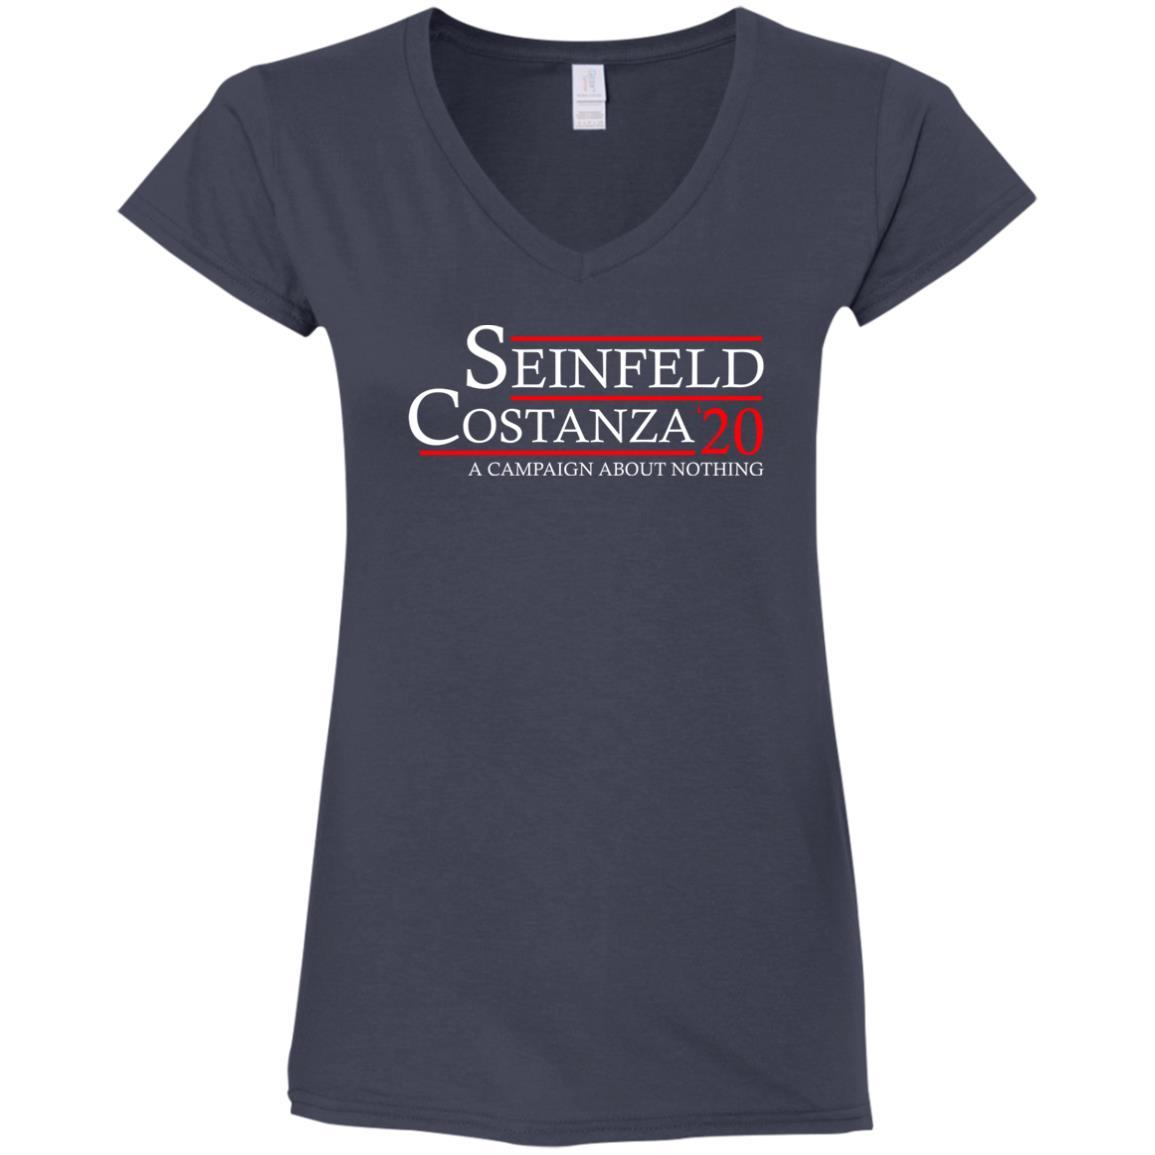 Seinfeld 20 Ladies V-Neck